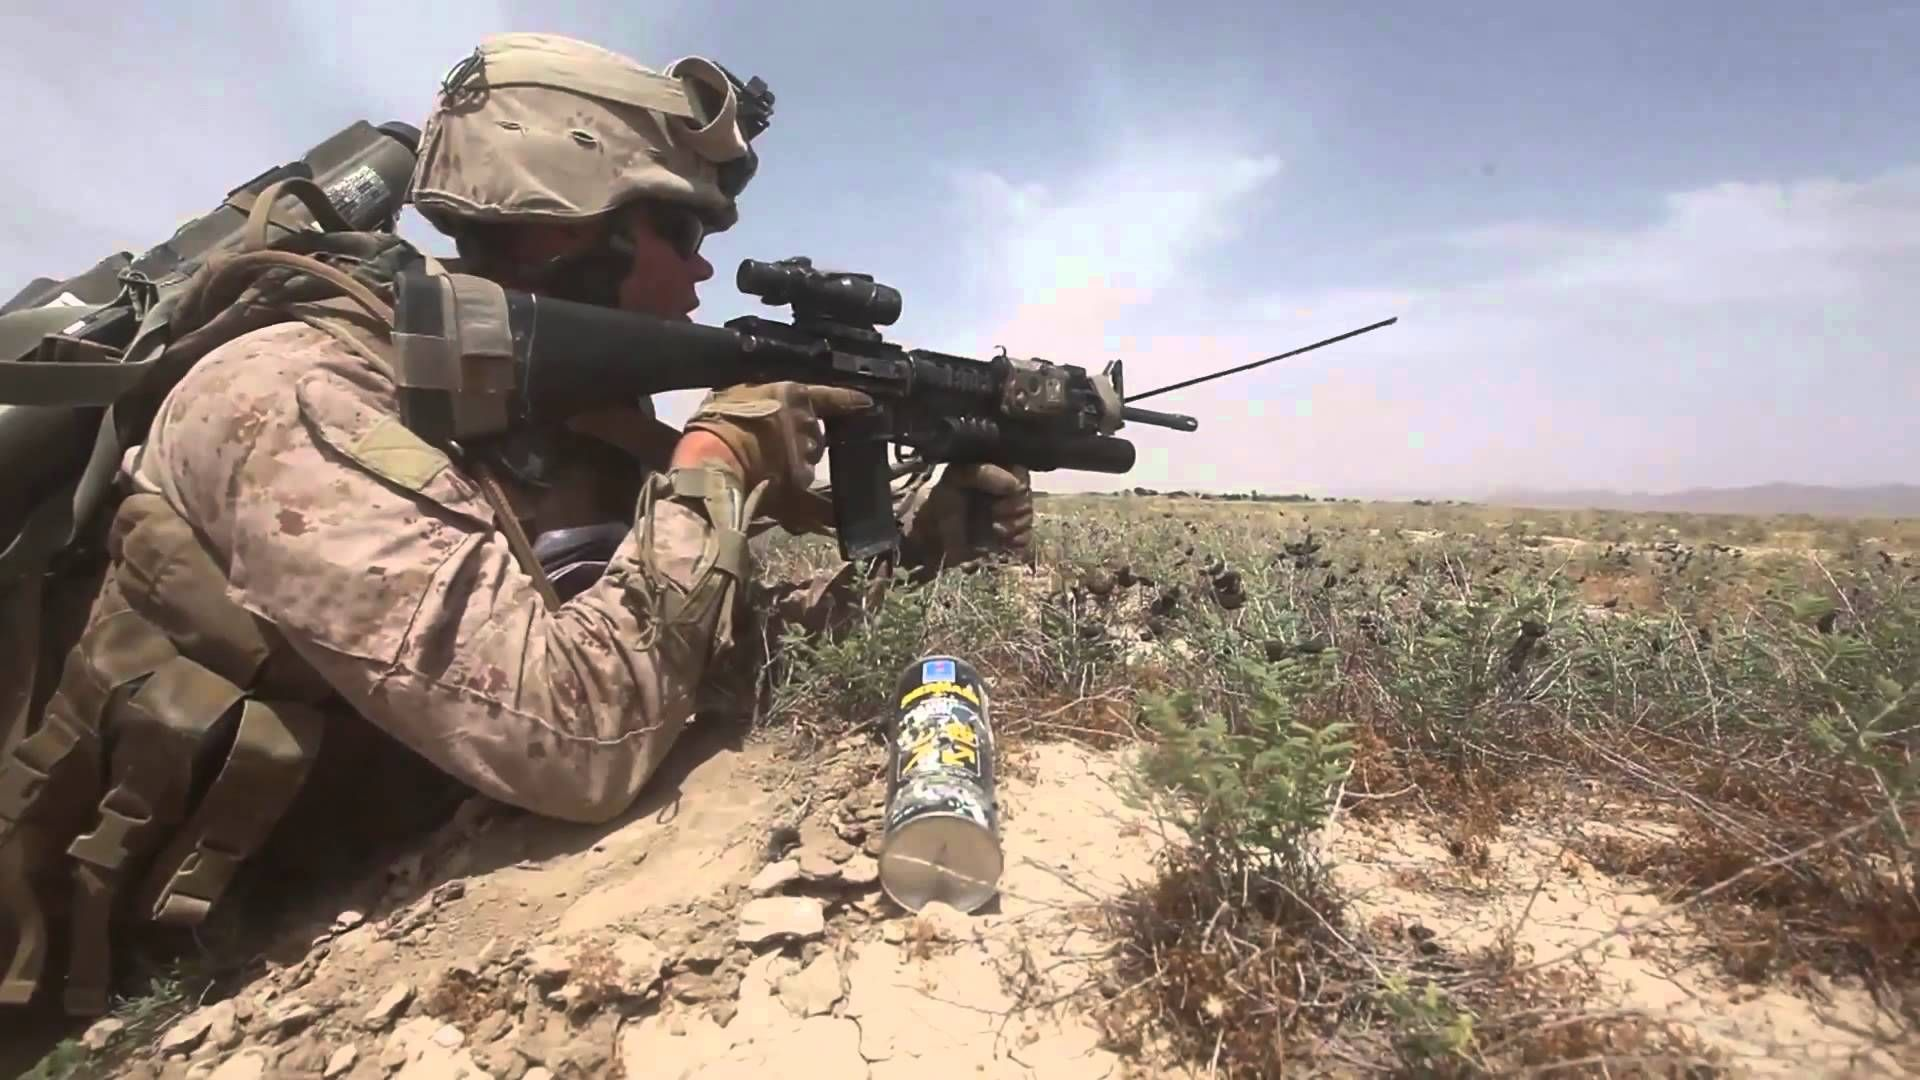 Us Marines Patrol In Afghanistan Combat Footage Youtube